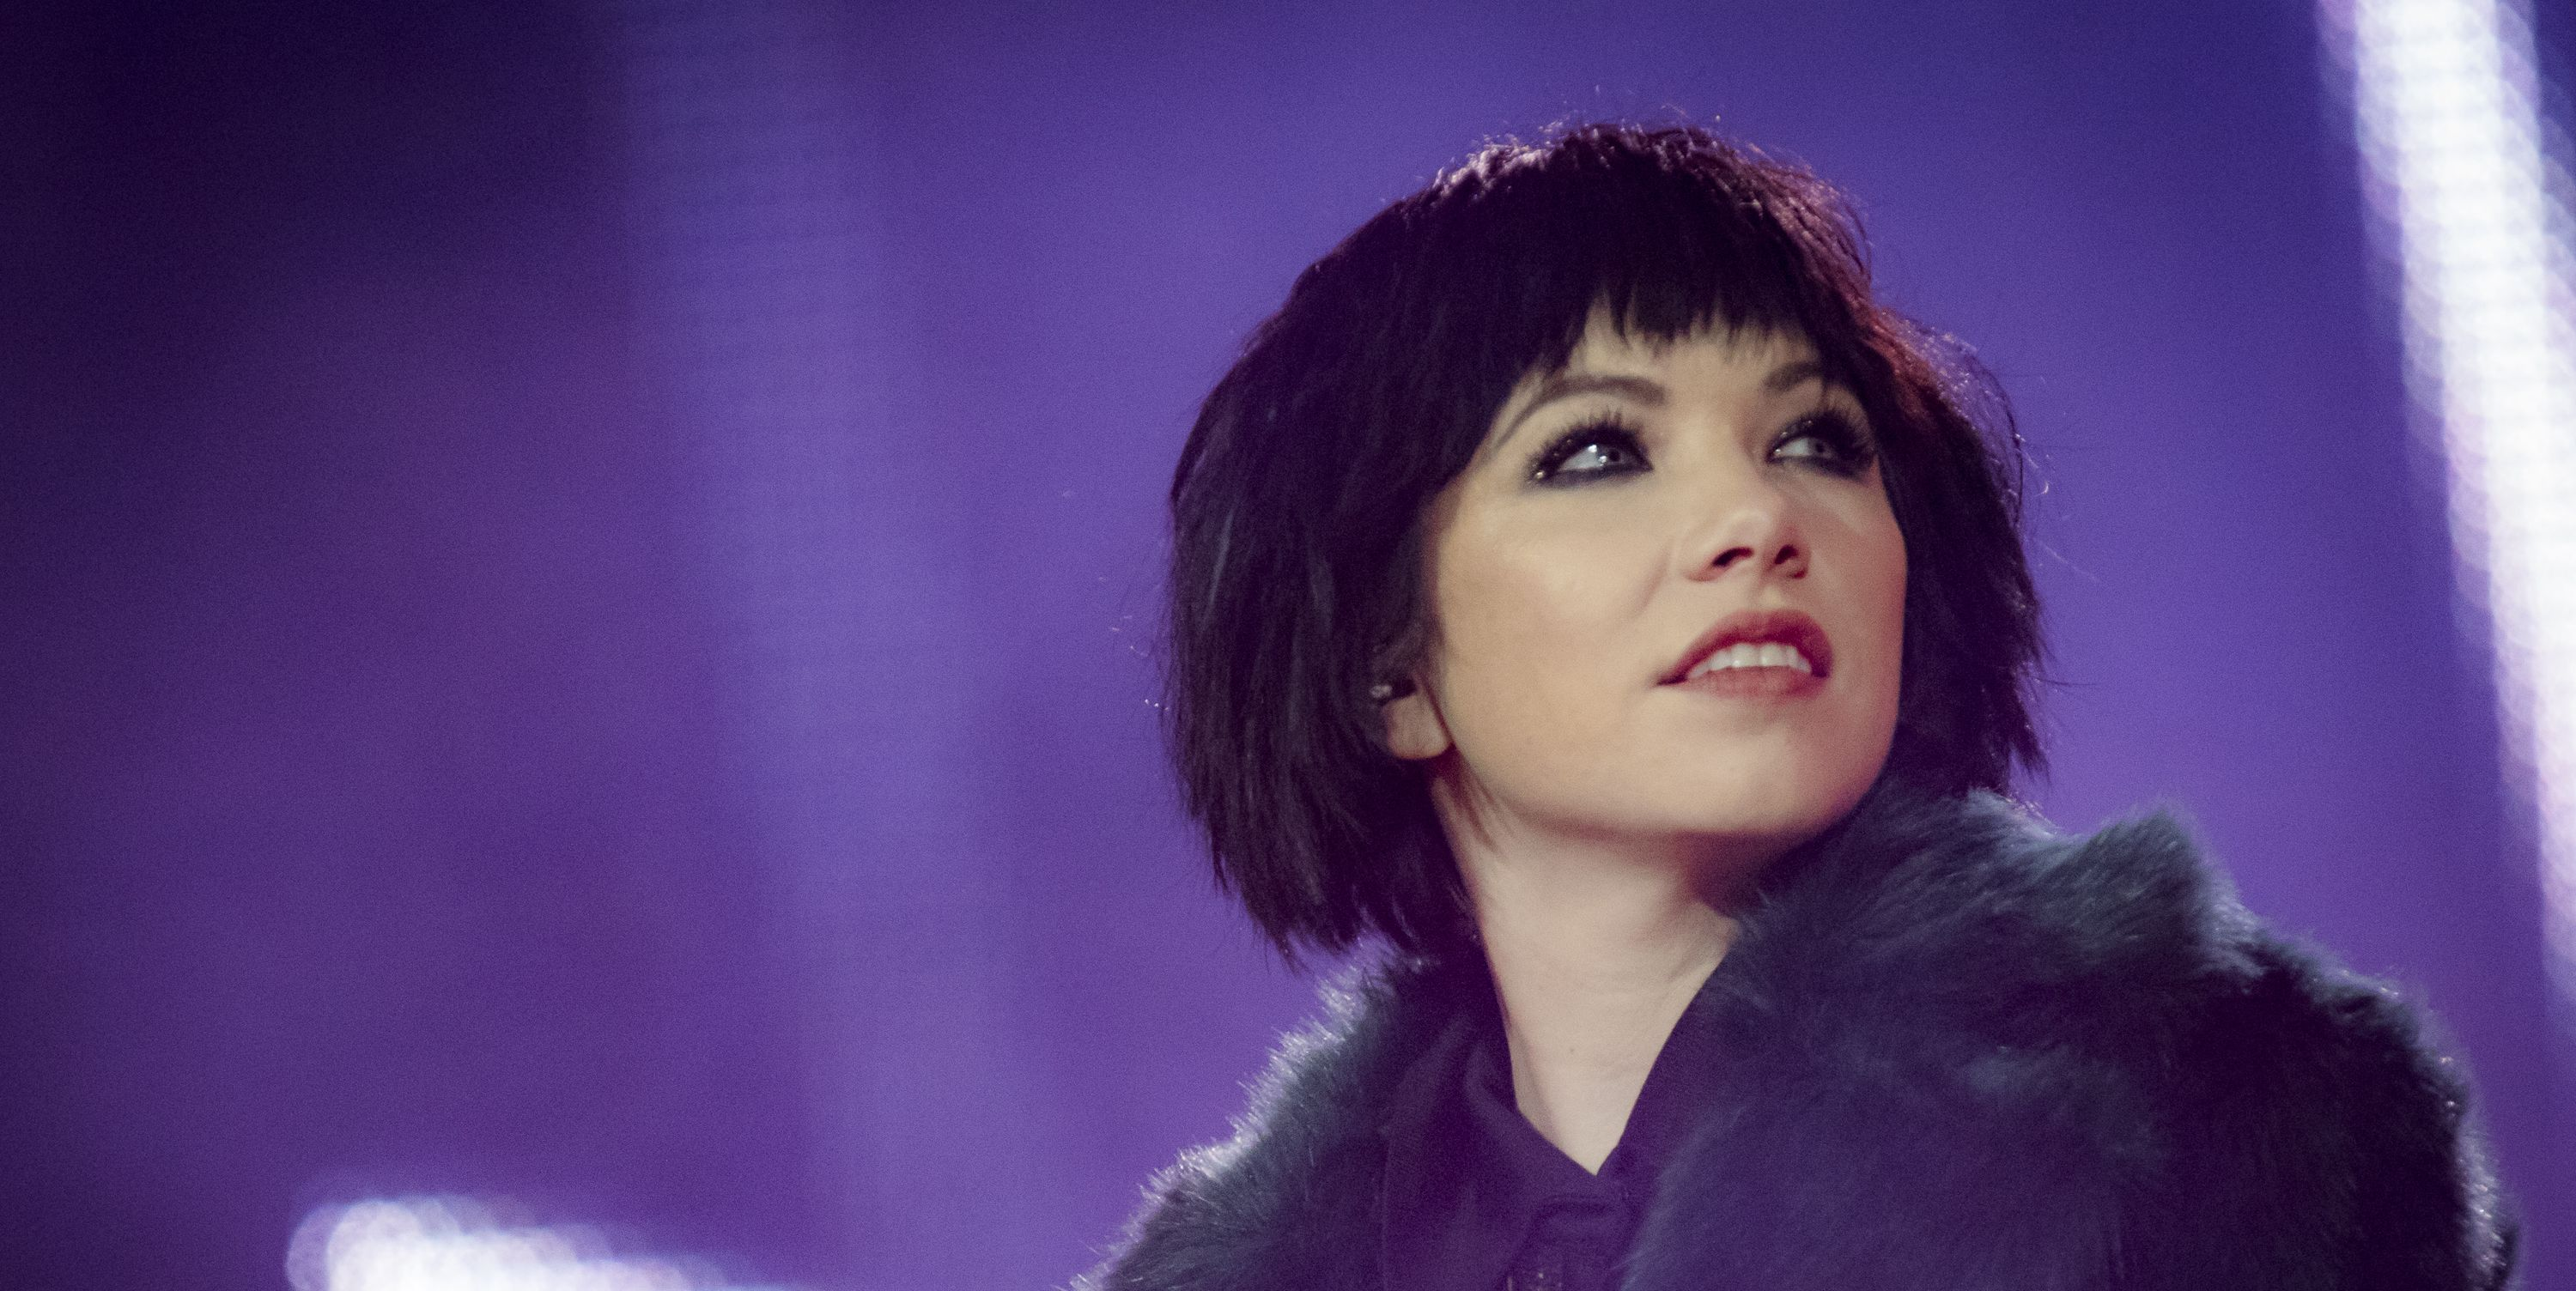 Carly Rae Jepsen's Outtakes Are Still Better Than Most People's Best Songs